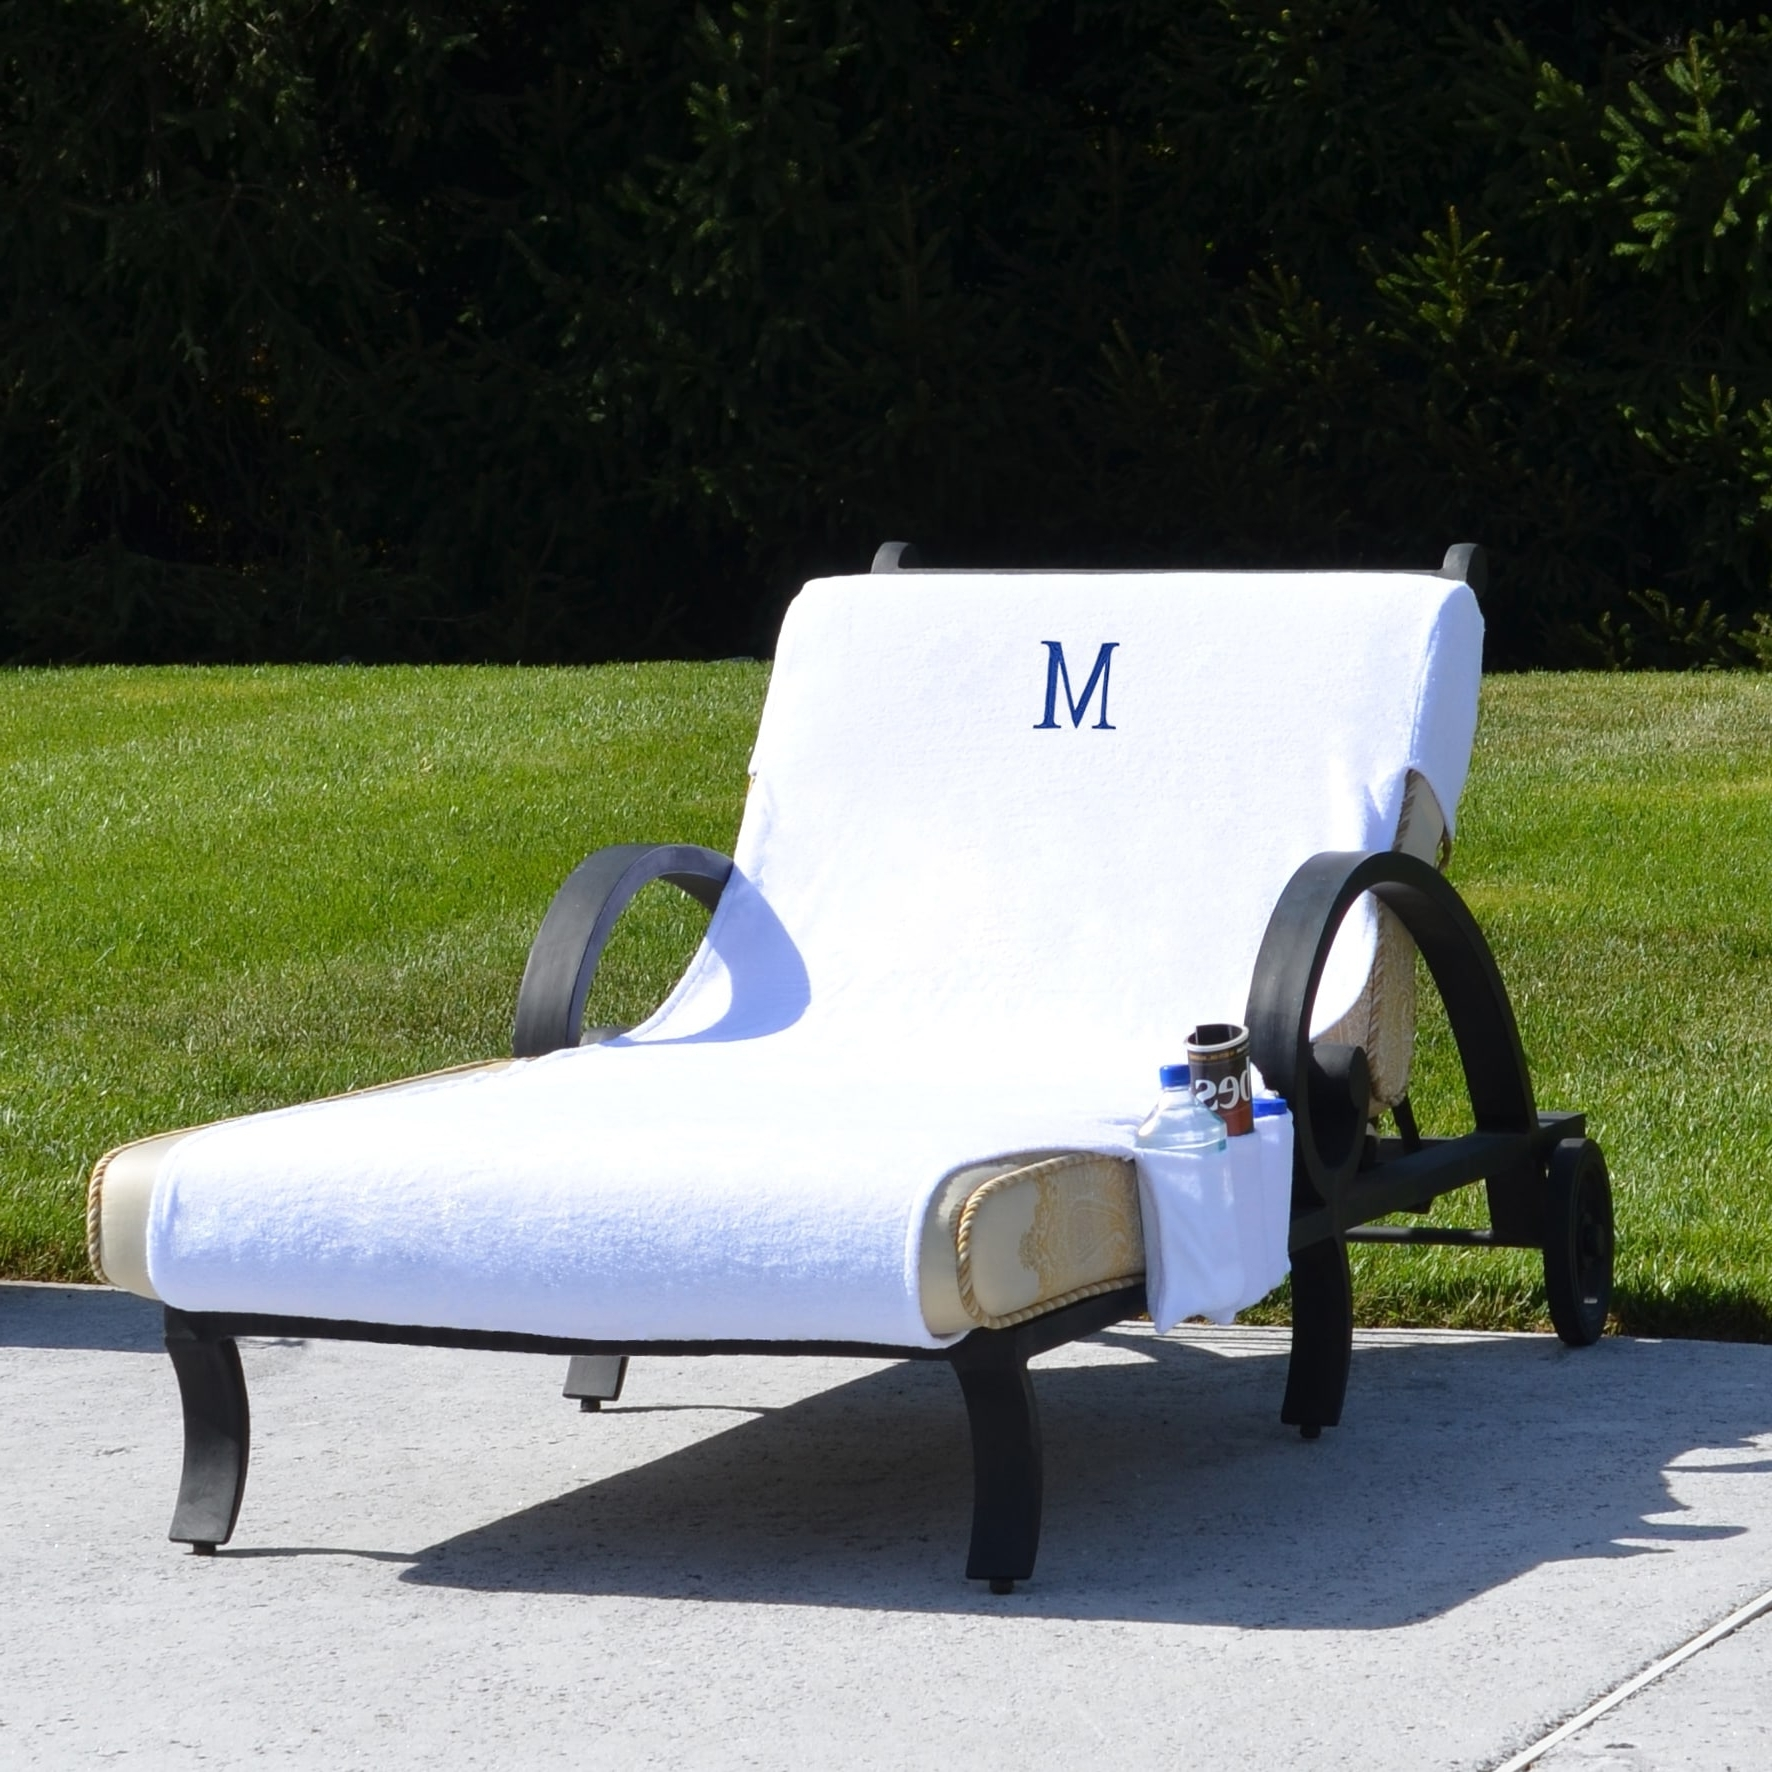 Most Recent Turkish Cotton Monogrammed Towel Cover With Pockets For Standard With Regard To Covers For Chaise Lounge Chair (View 10 of 15)